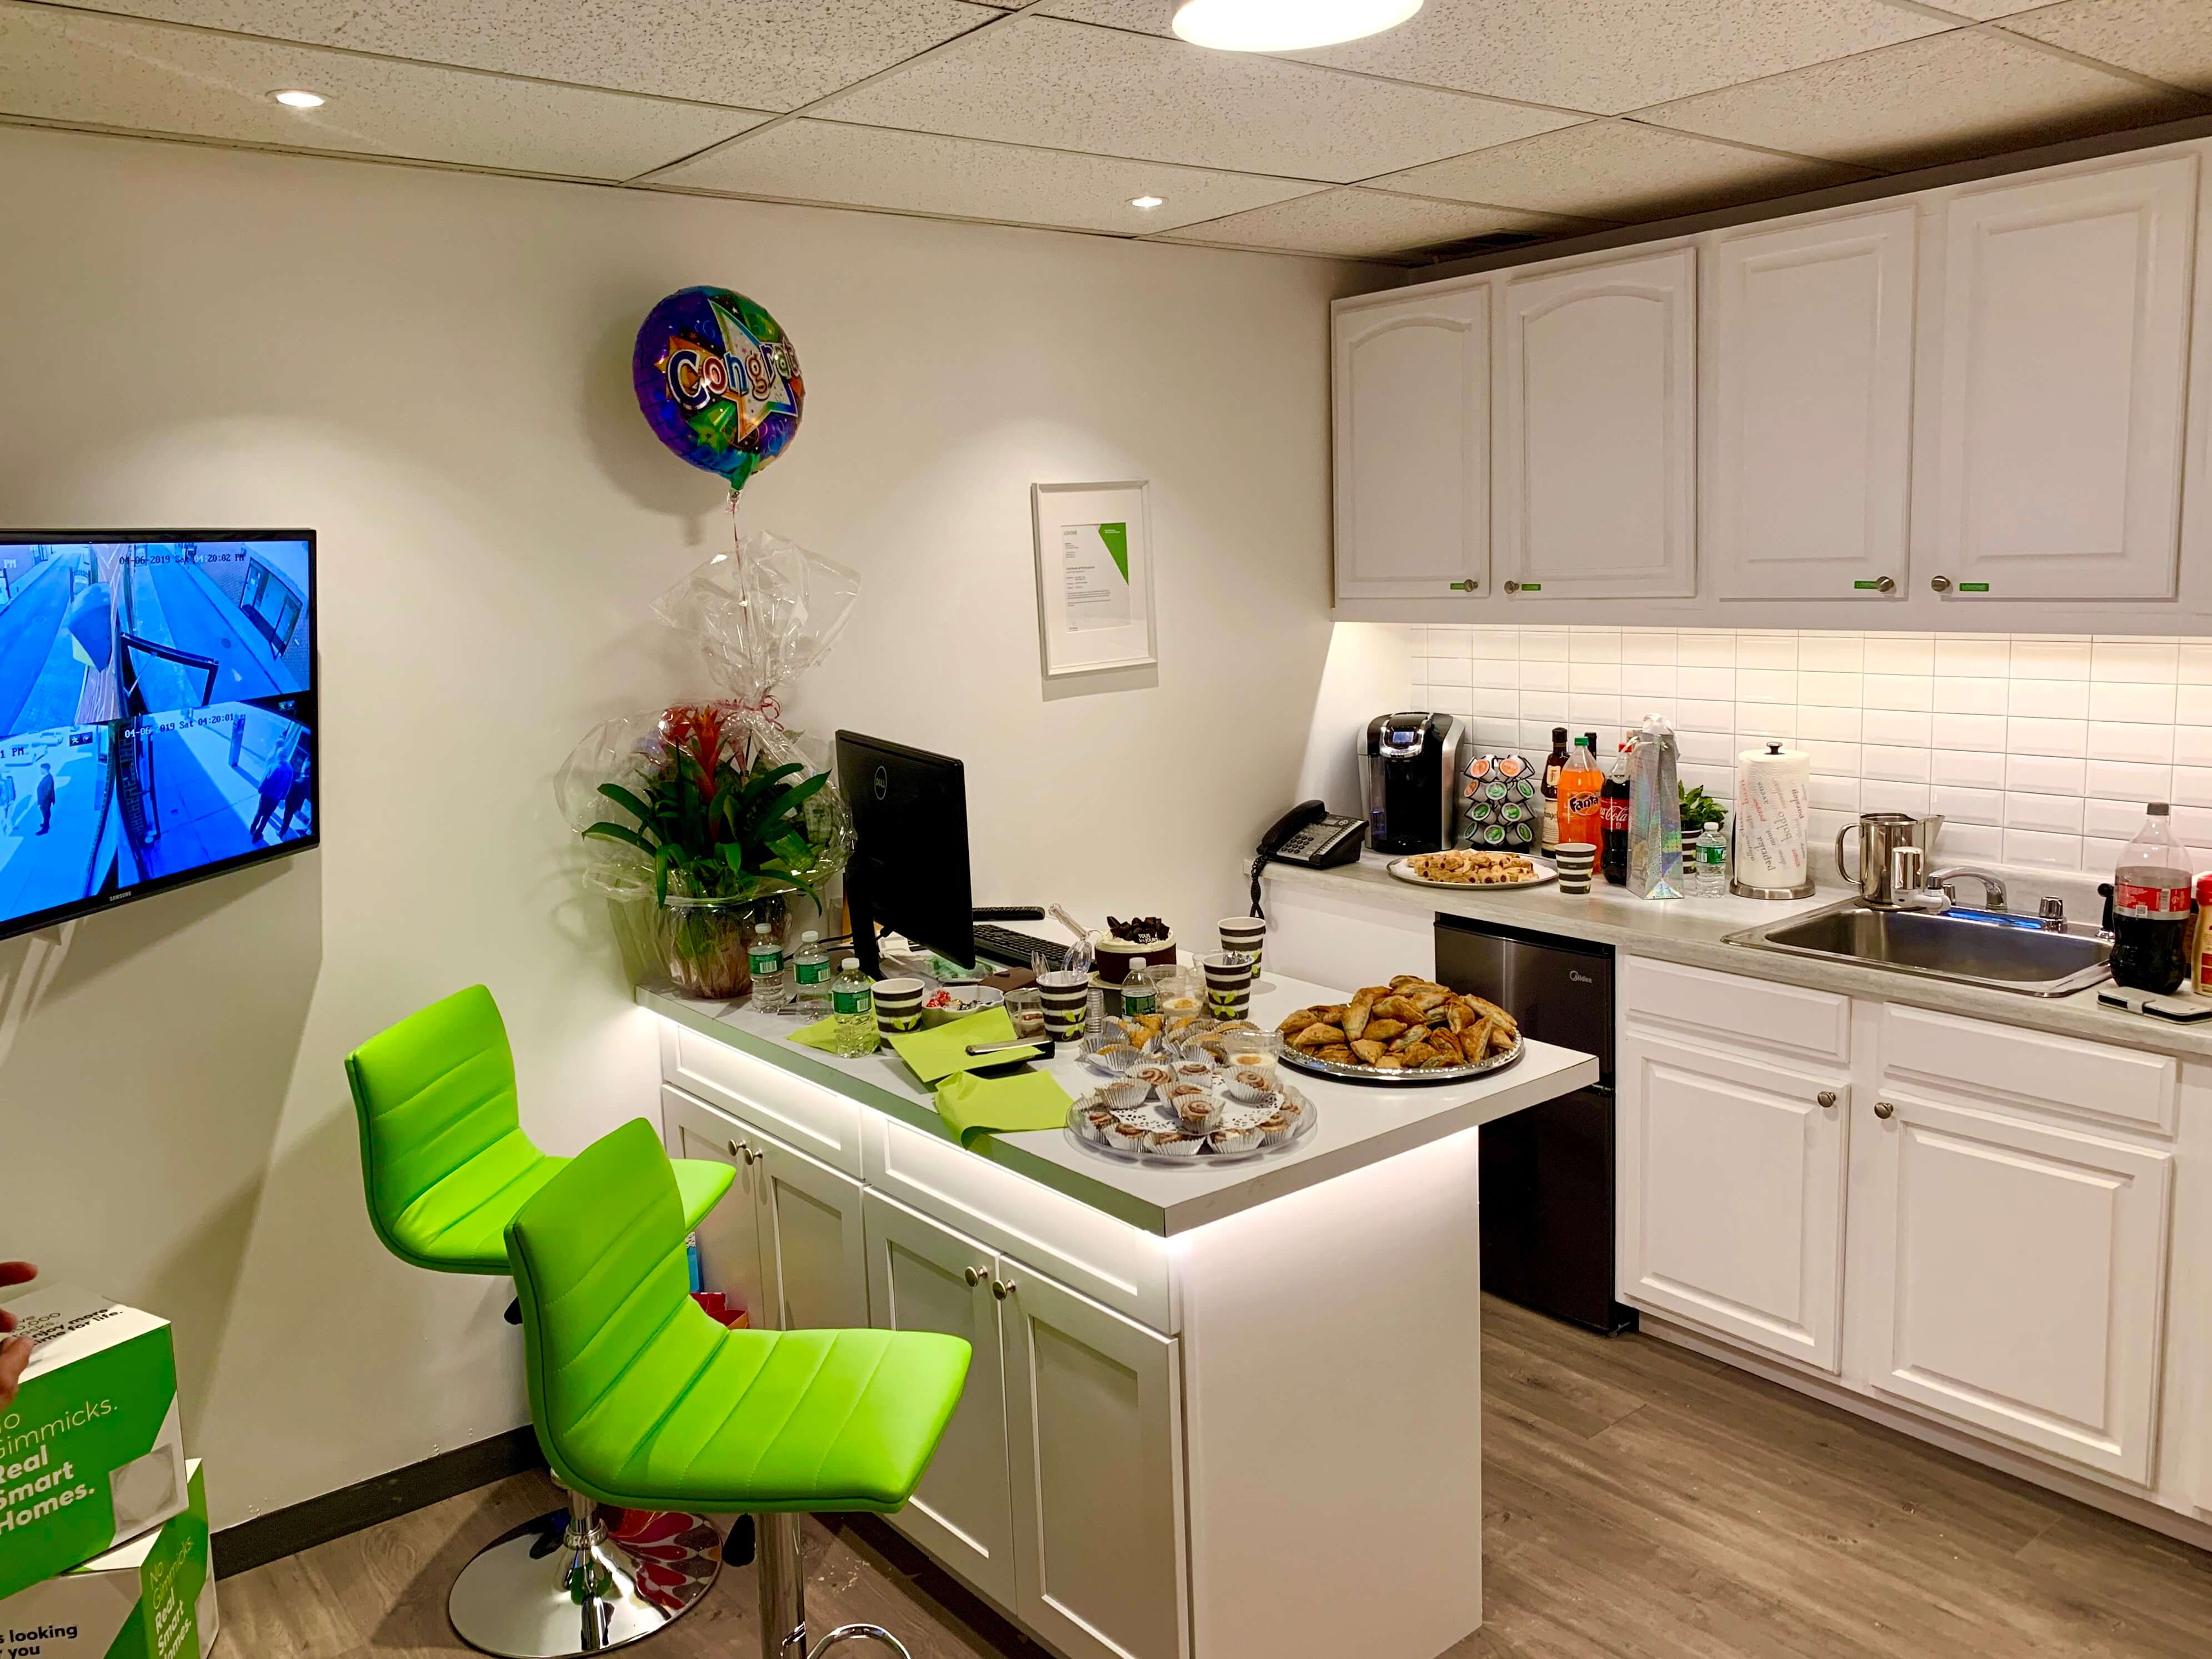 Showroom kitchen with party food spread on counter